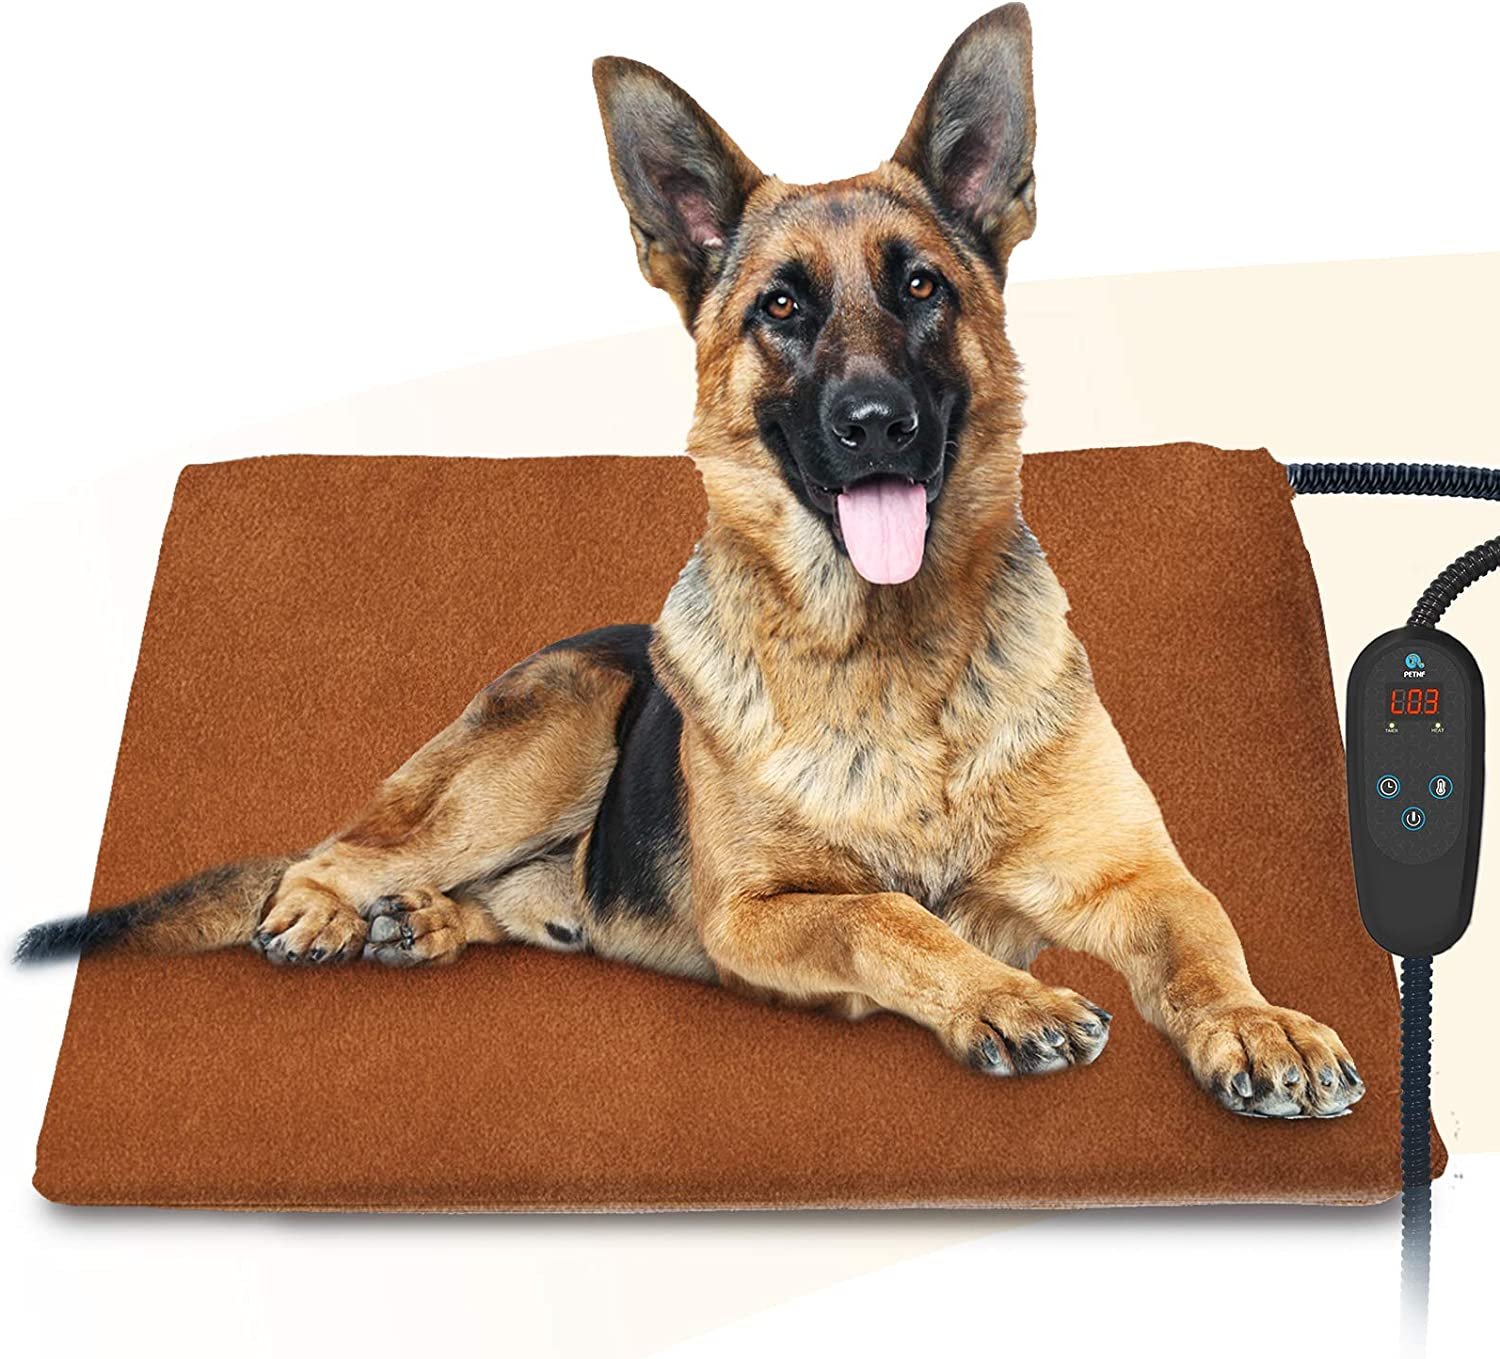 2020 Newest Pet Heating Pad Temperature Adjustment Dog Heating Pad Anti-bite Puppy Heating Pad with Timer Cat Heating Pad Indoor Waterproof Pet Warming Pad Electric Heated Bed Mat for Medium/Large Dog